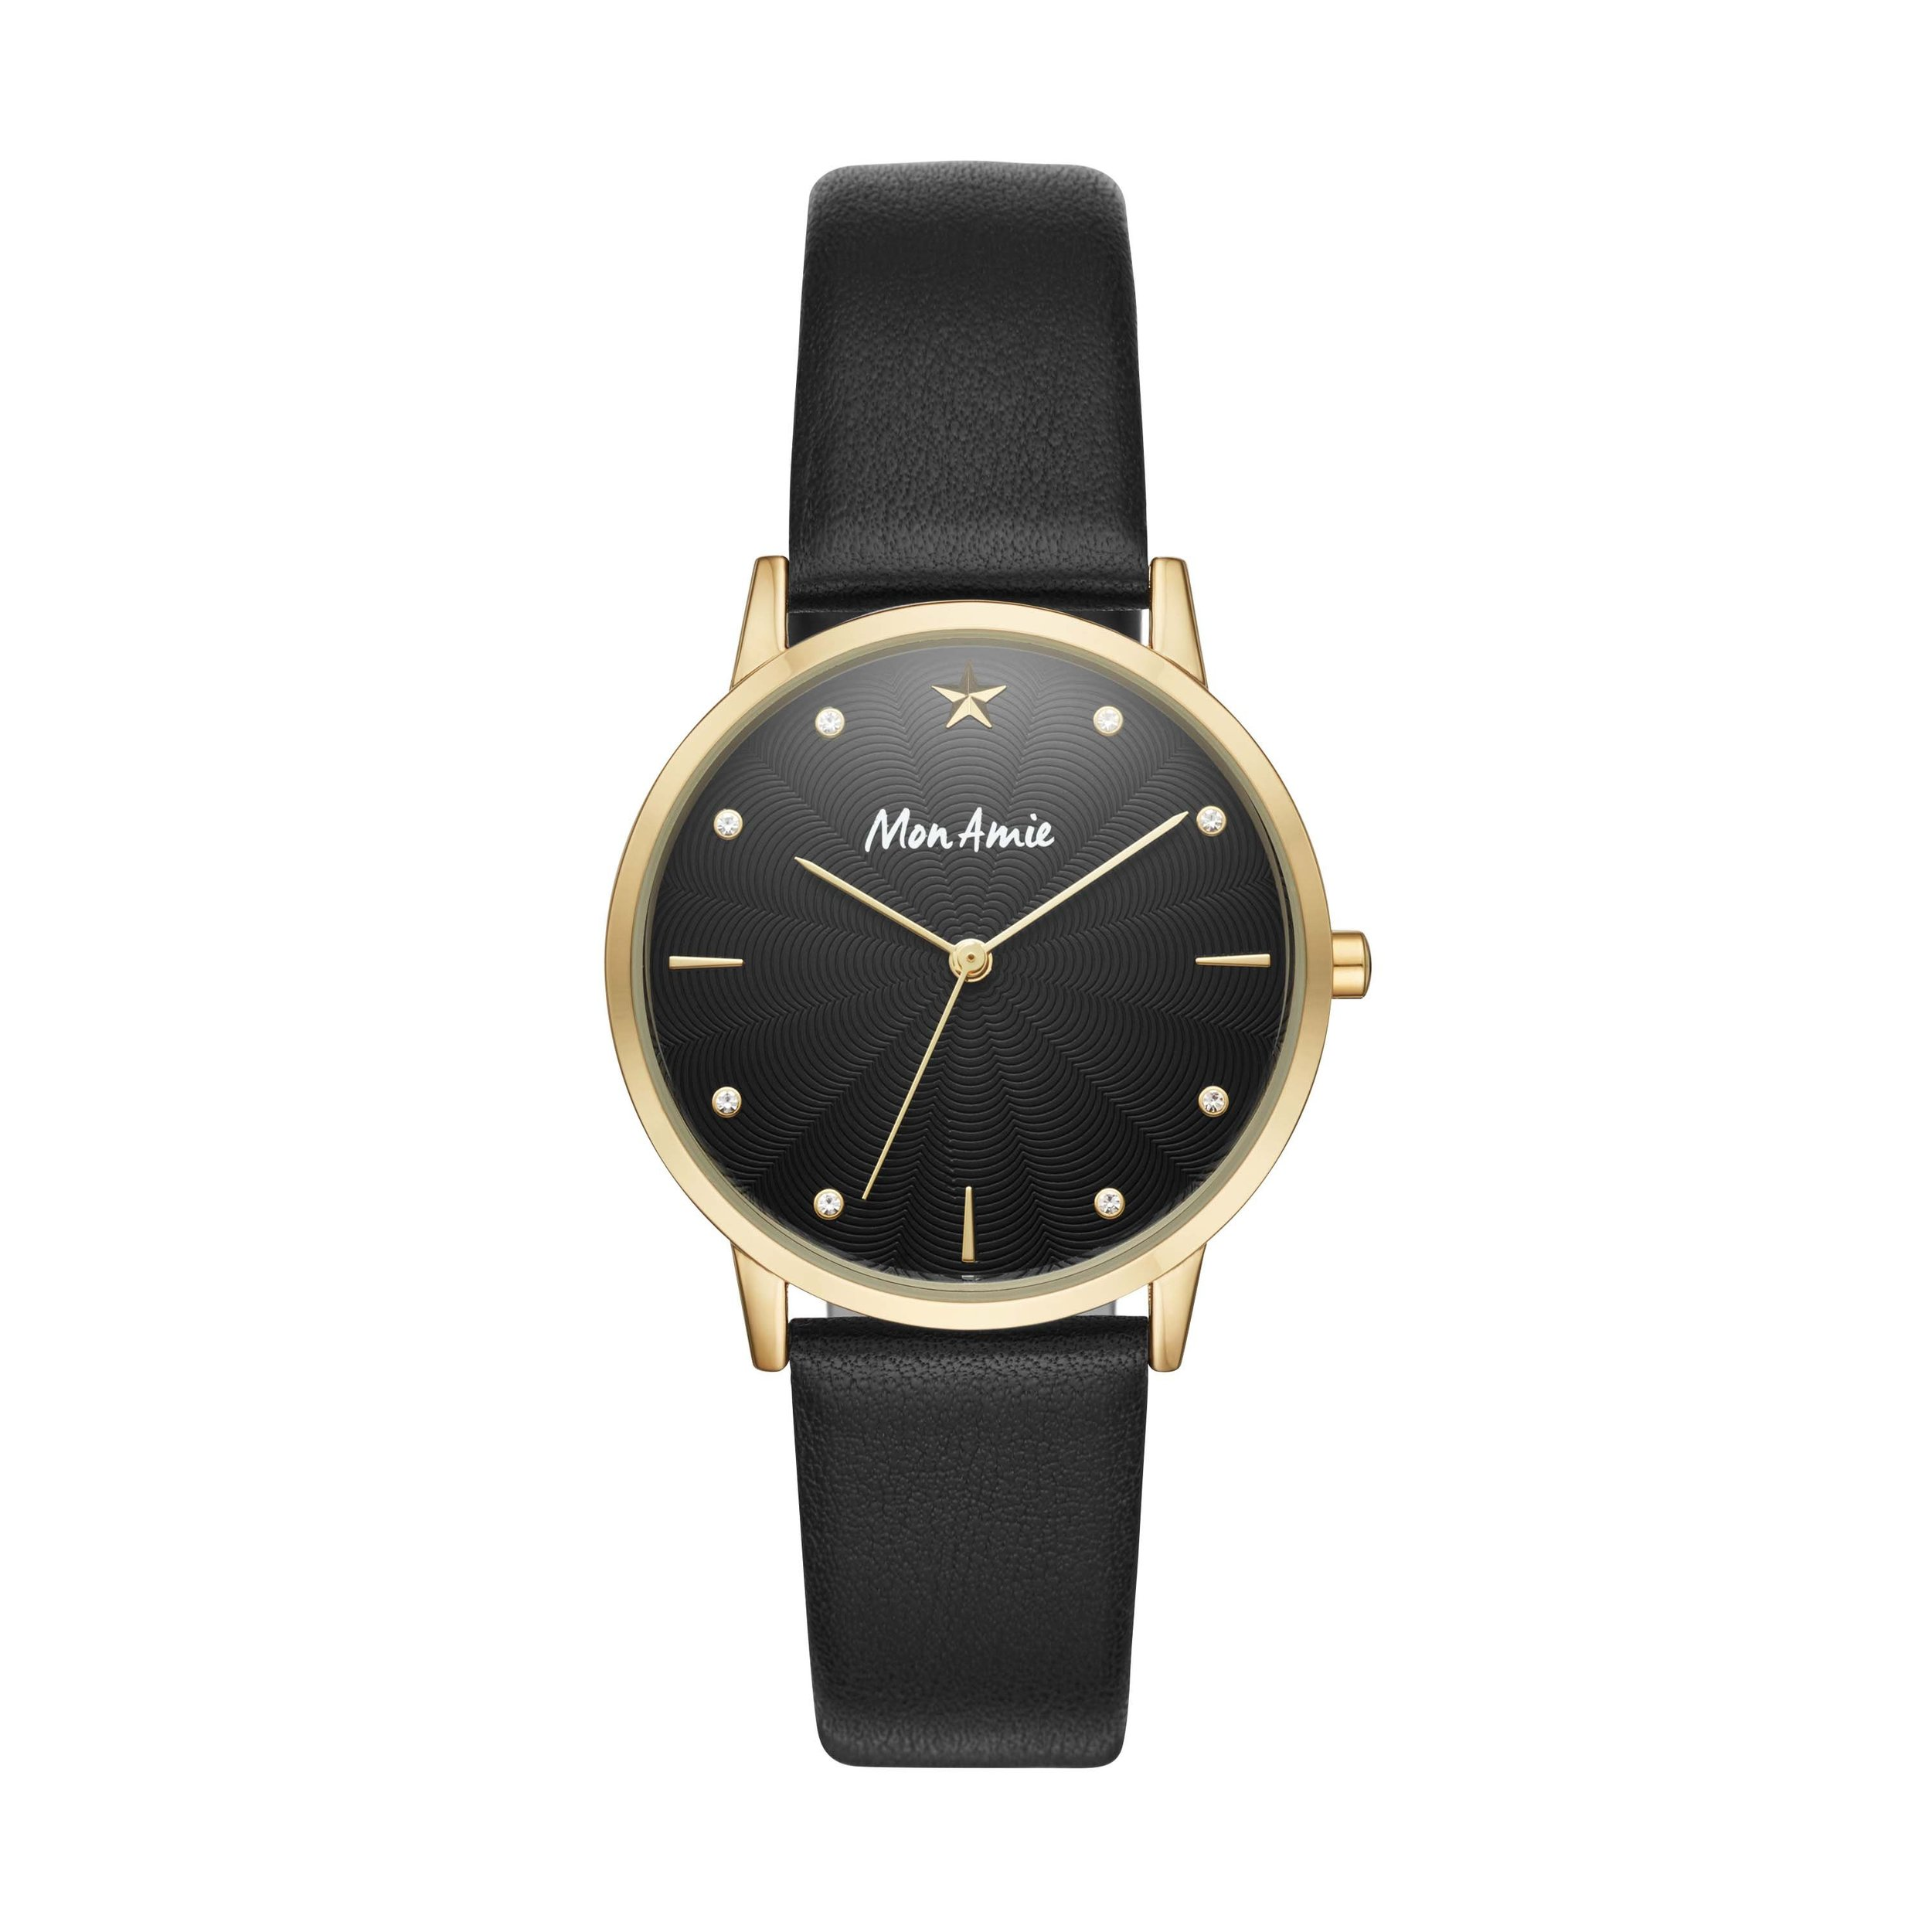 Mon Amie Education Watch $95